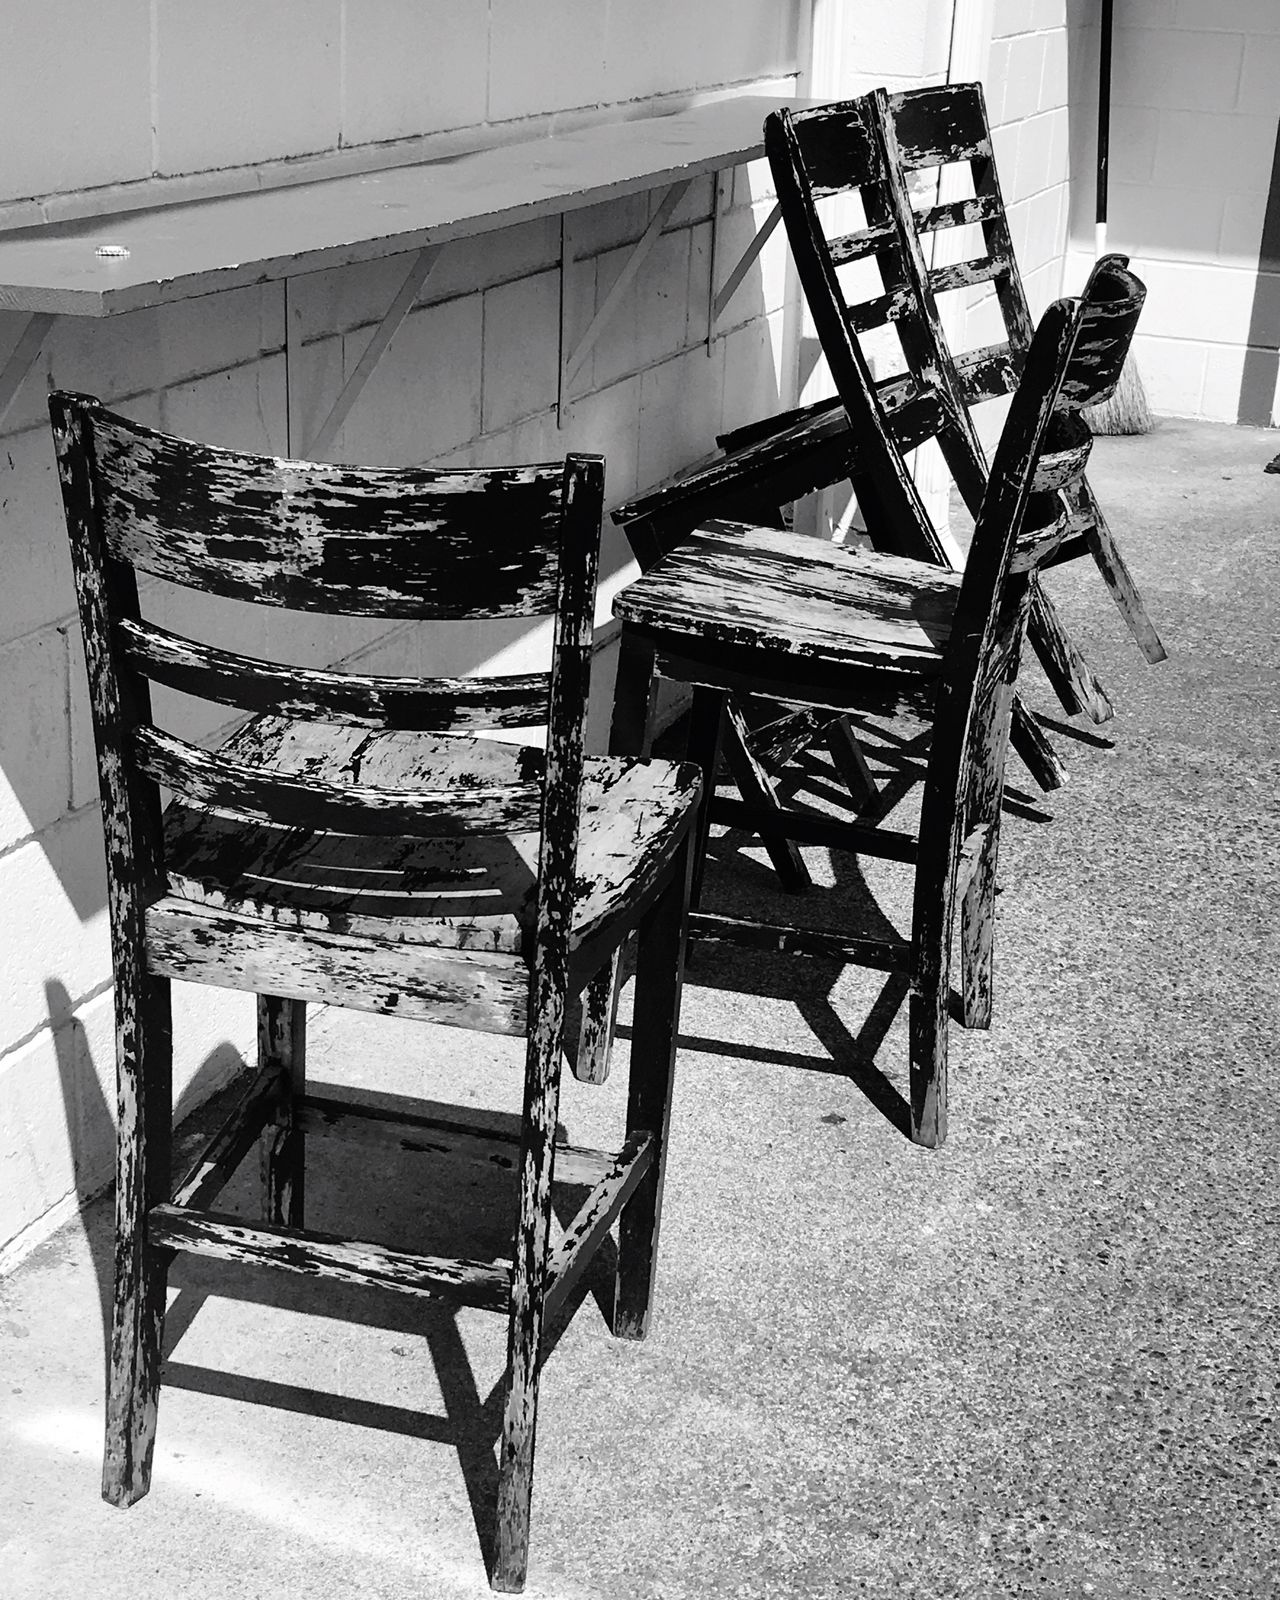 Chair Table No People Furniture Wood - Material Folding Chair Local Taquiera Blackandwhite Day Seat Architecture